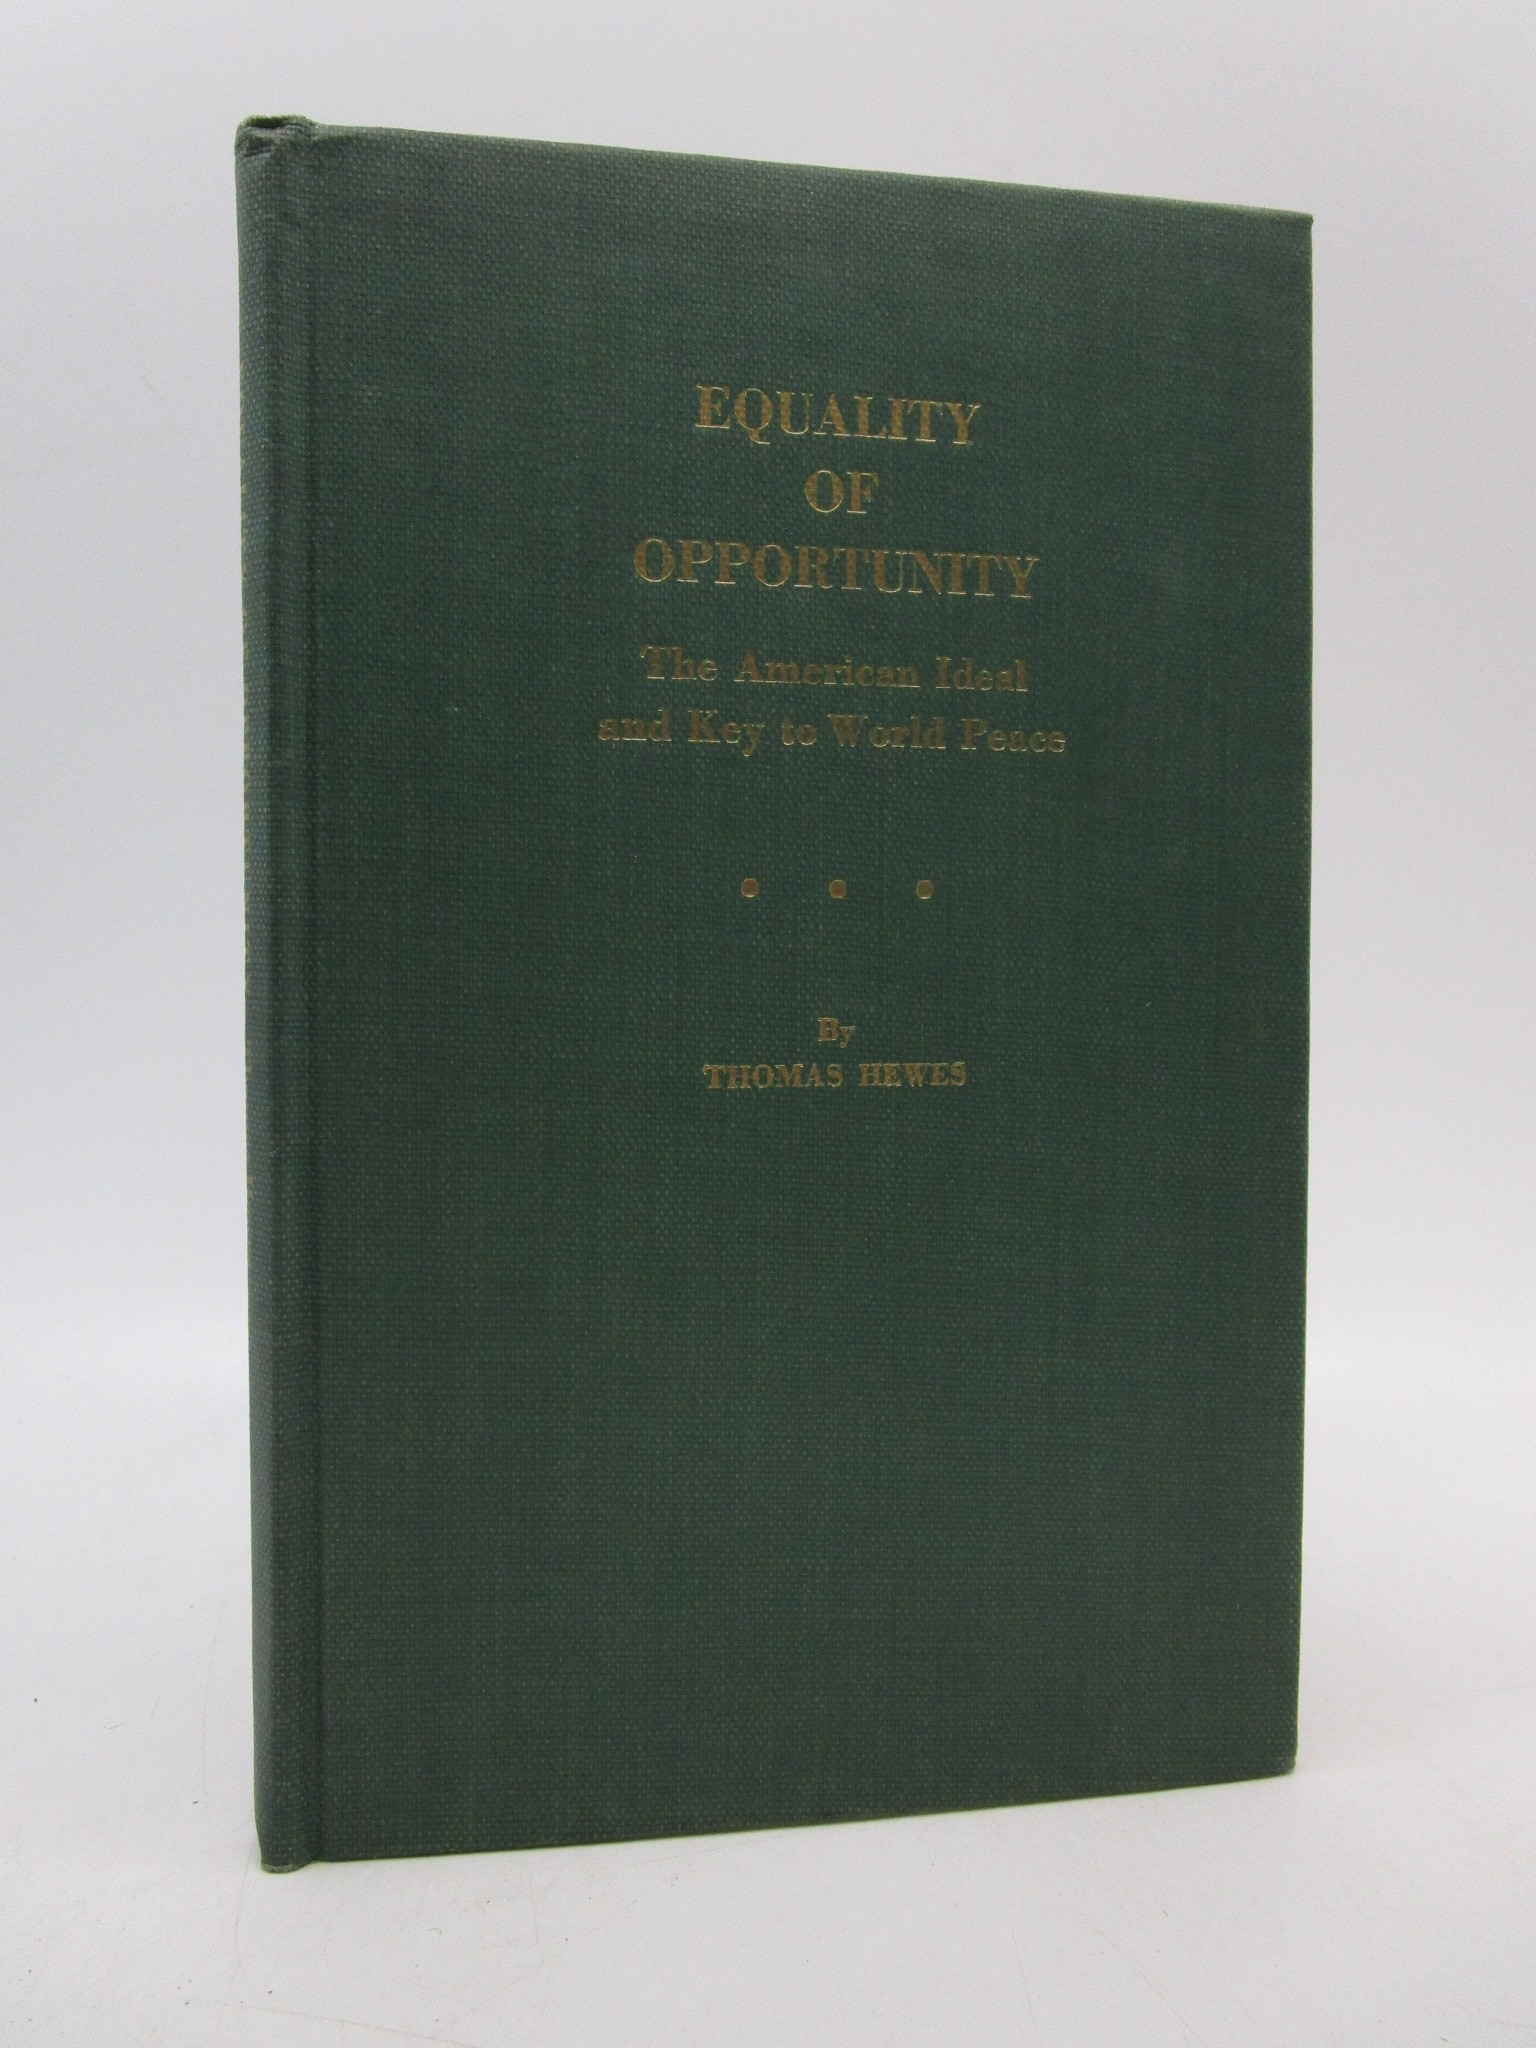 Image for Equality of Opportunity: The American Ideal and Key to World Peace